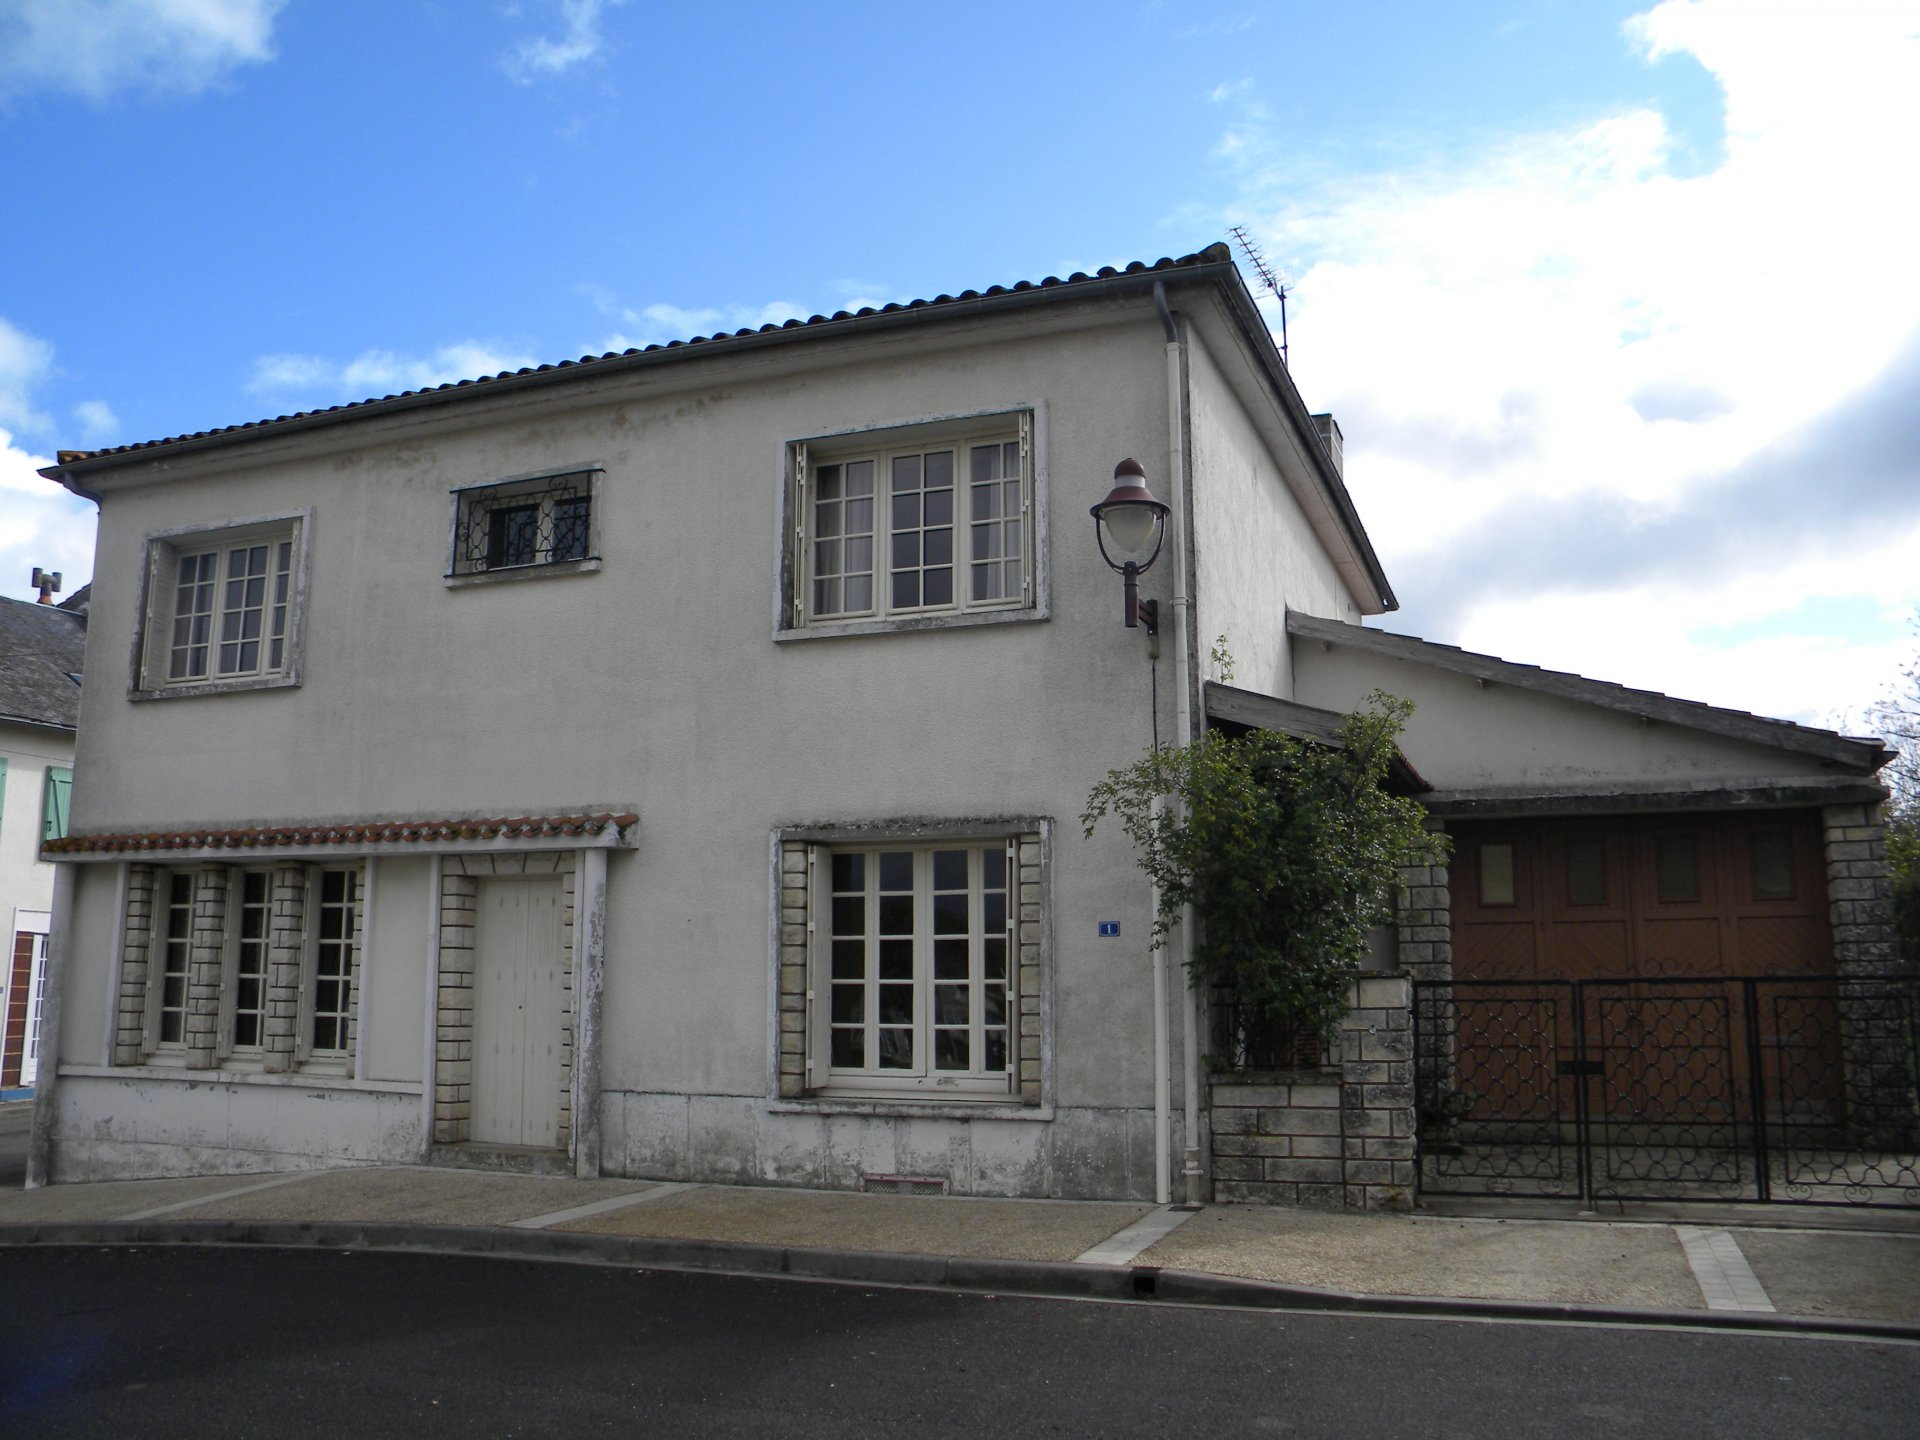 Village house with 4-bedrooms and attached garden